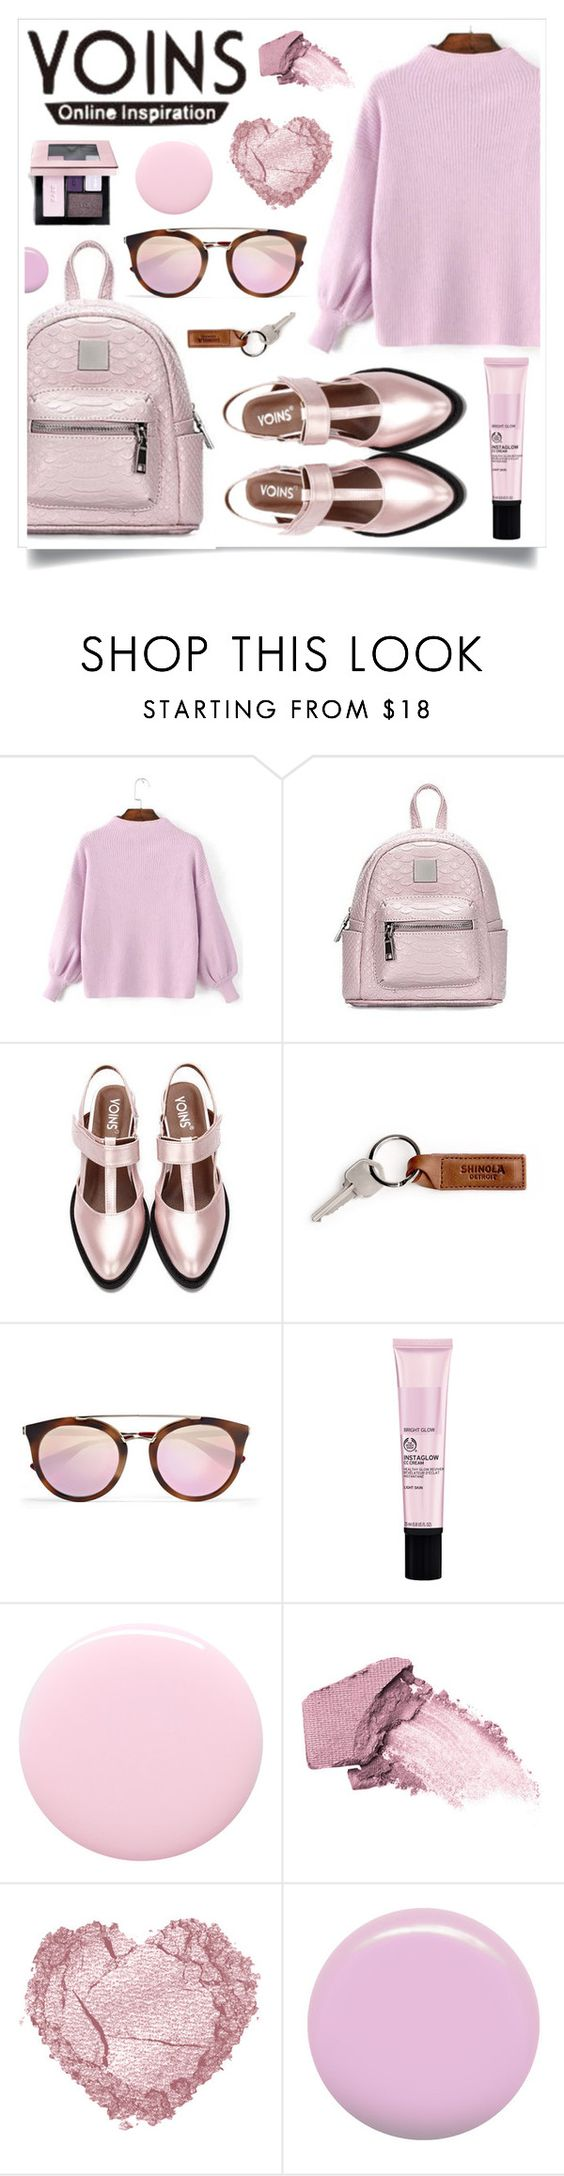 """Sweet Dreams (Yoins 1)"" by racanoki ❤ liked on Polyvore featuring Prada, Nails Inc., Elizabeth Arden, Jin Soon, yoinscollection and loveyoins"